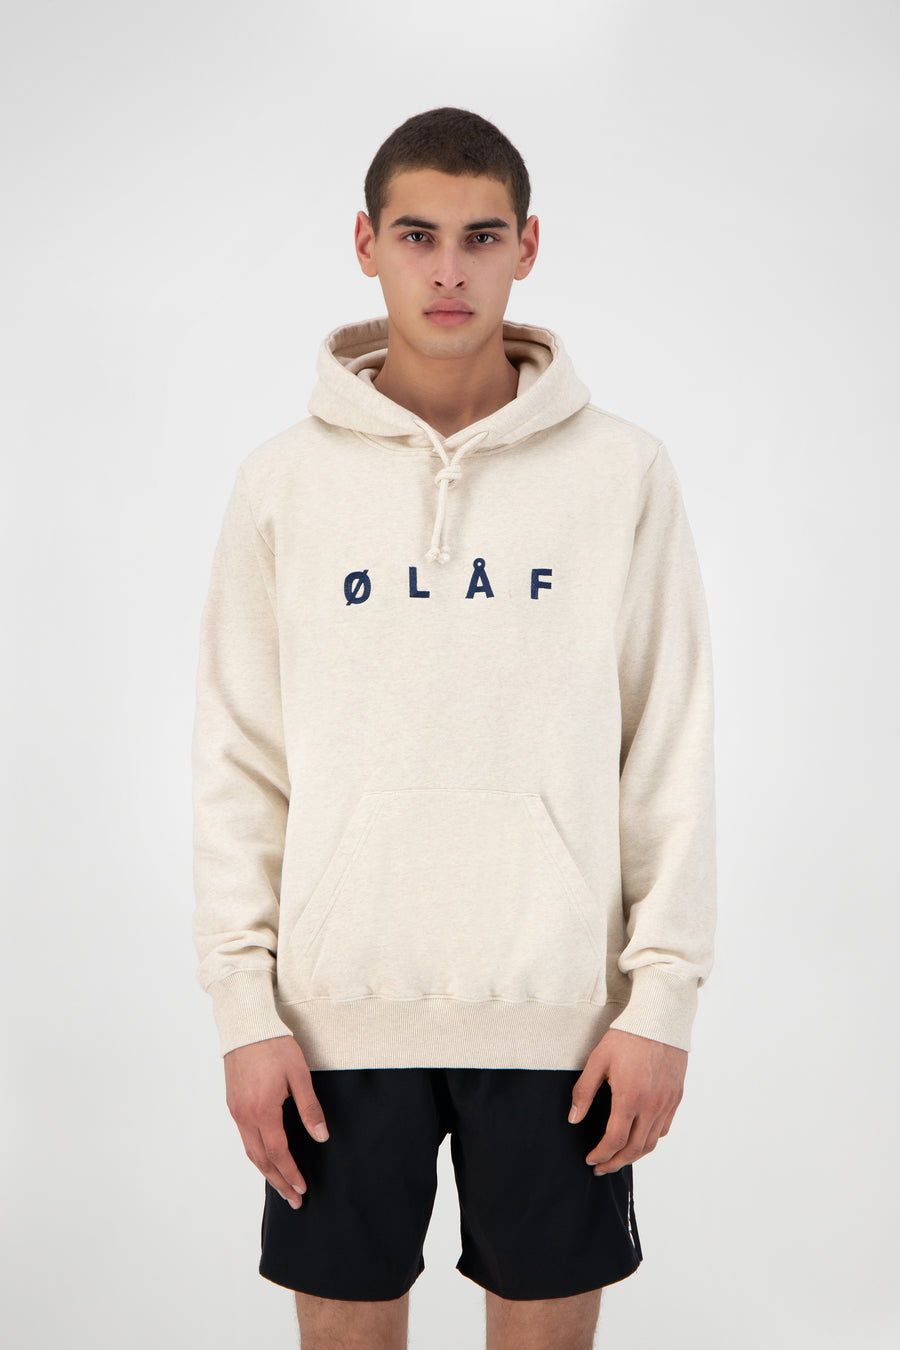 ØLÅF Chainstitch Hoodie - Ecru Heather